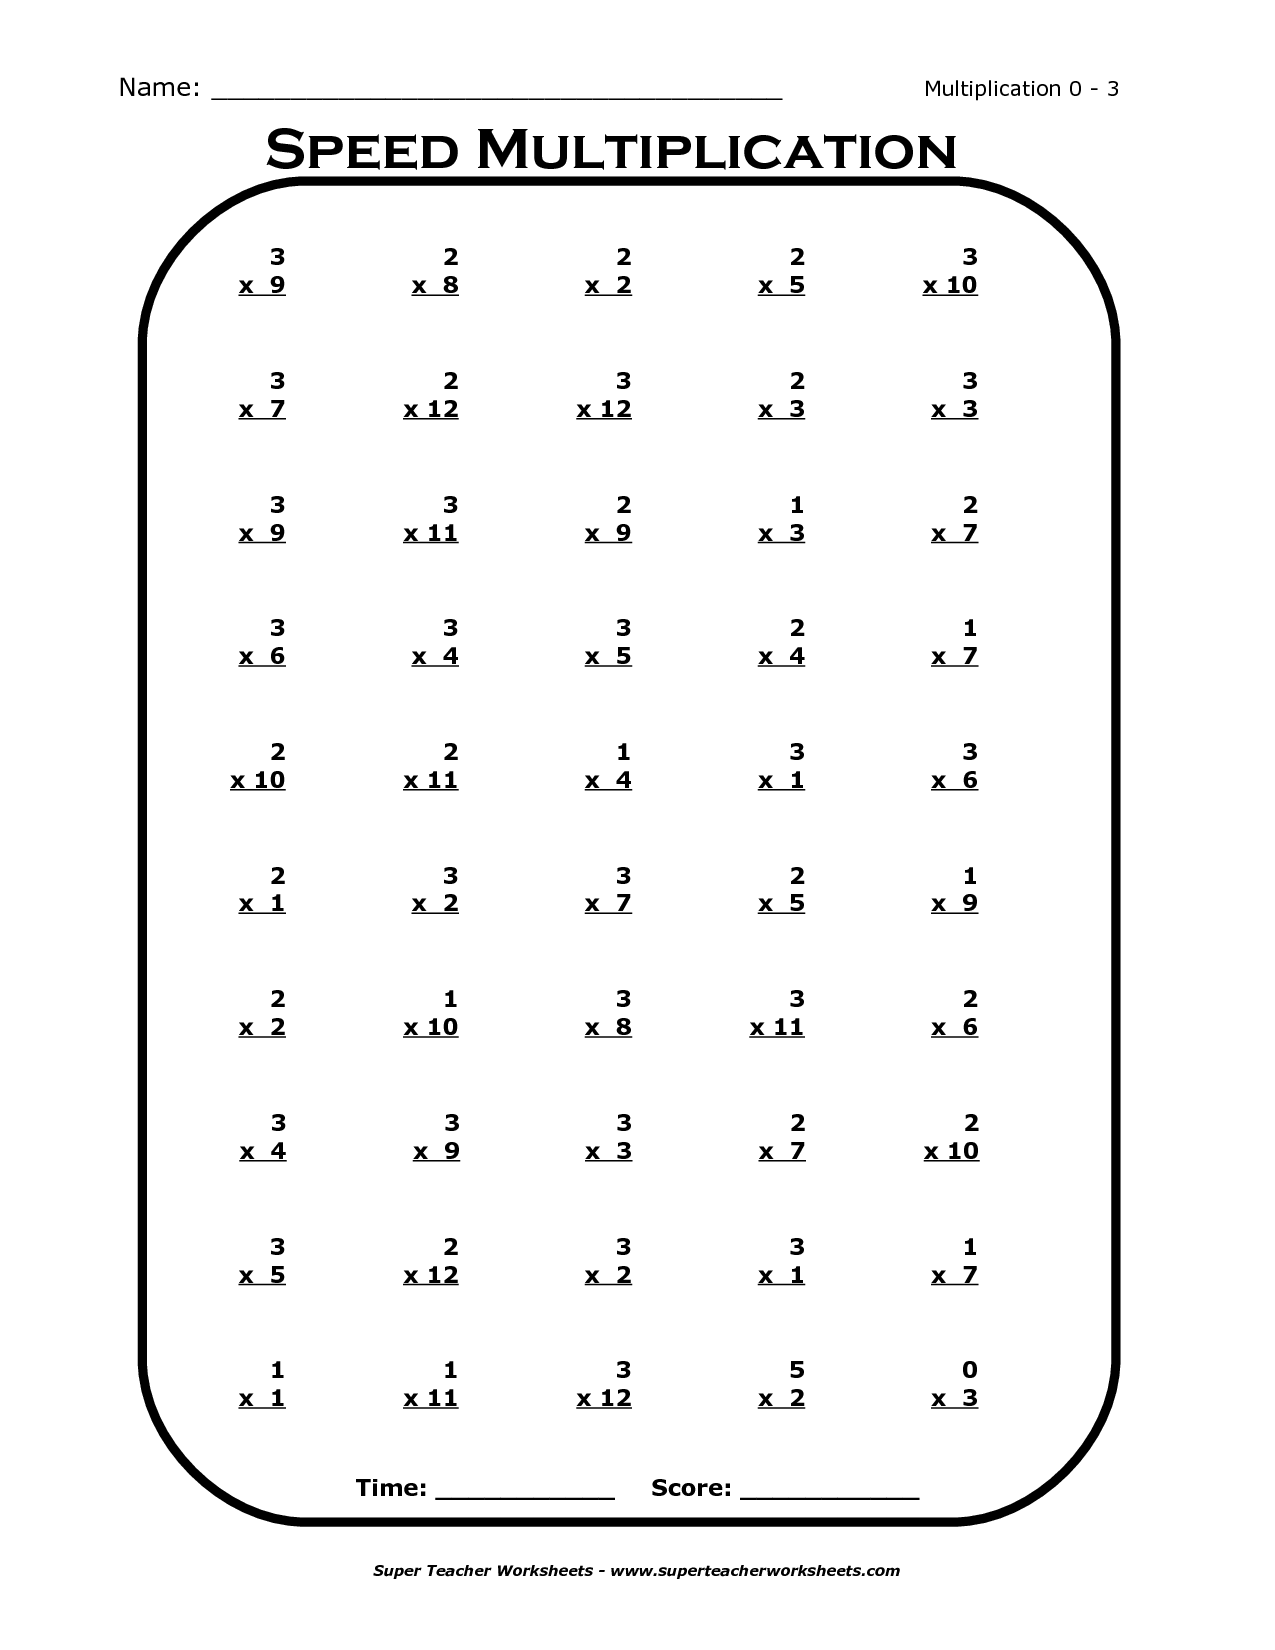 3rd grade multiplication coloring worksheets - Times Tables Worksheets 3rd Grade Basic Multiplication Table Worksheets